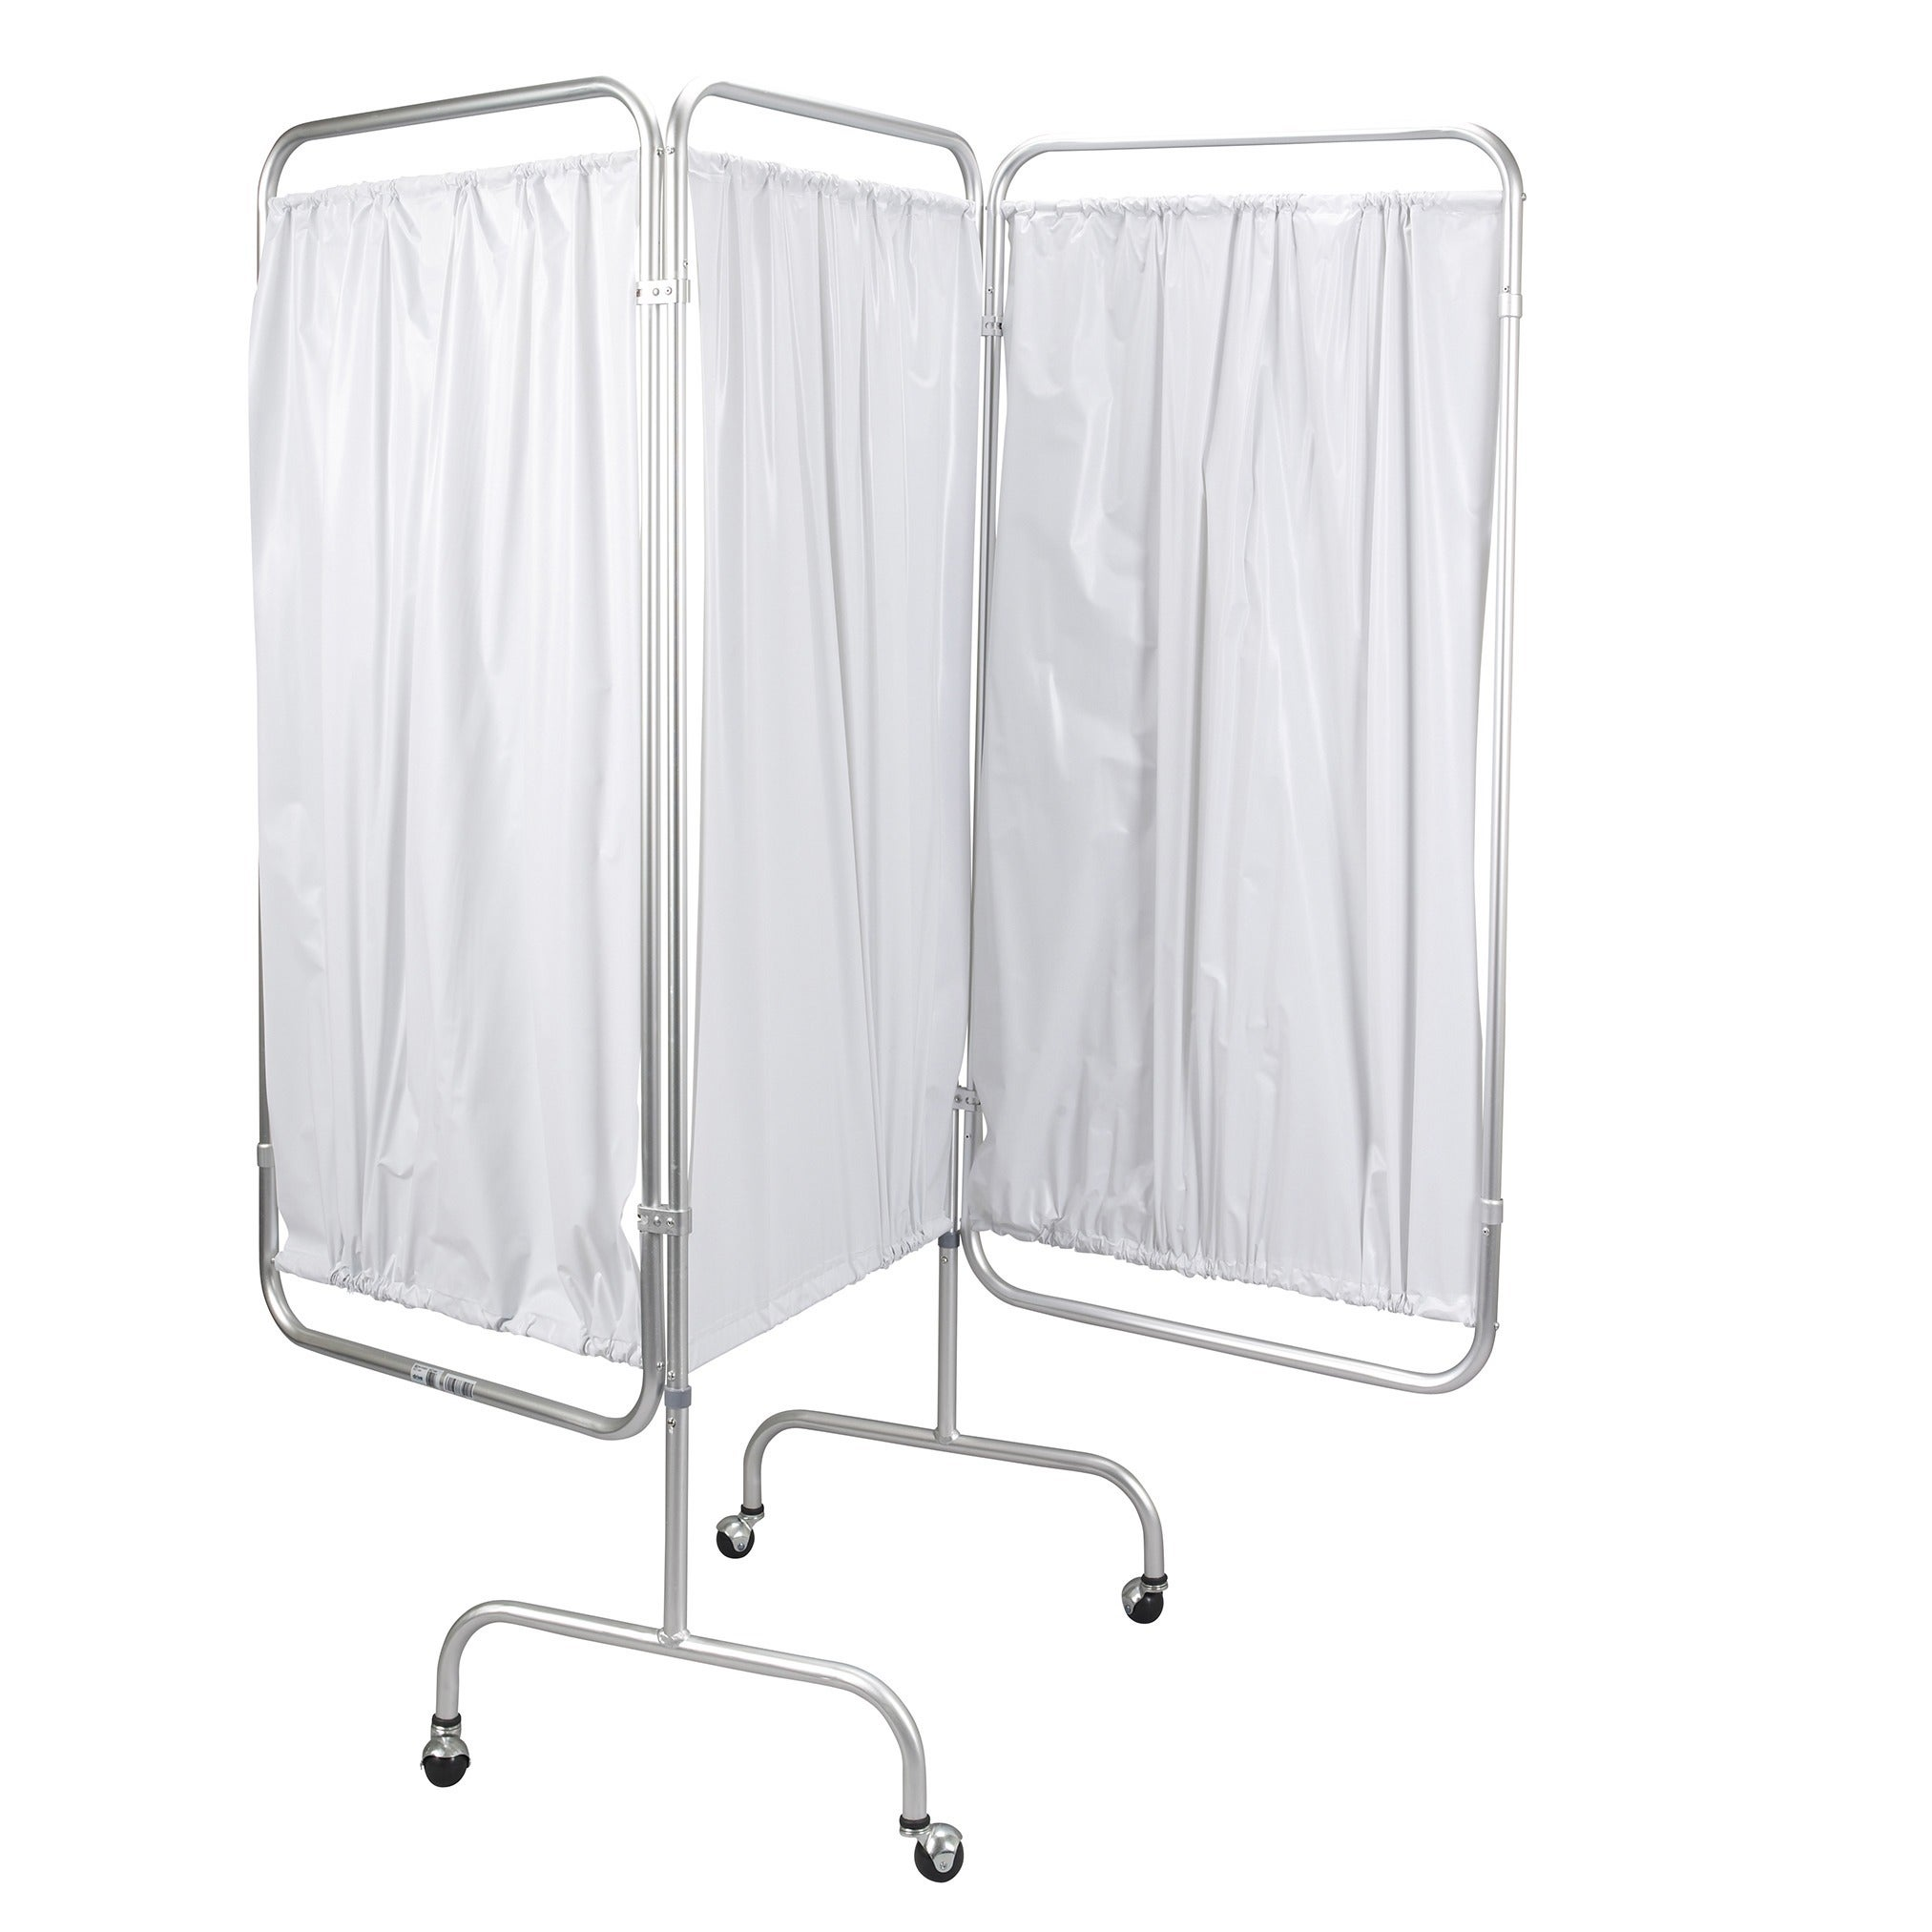 Drive Medical 3-panel Privacy Screen, Silver aluminum